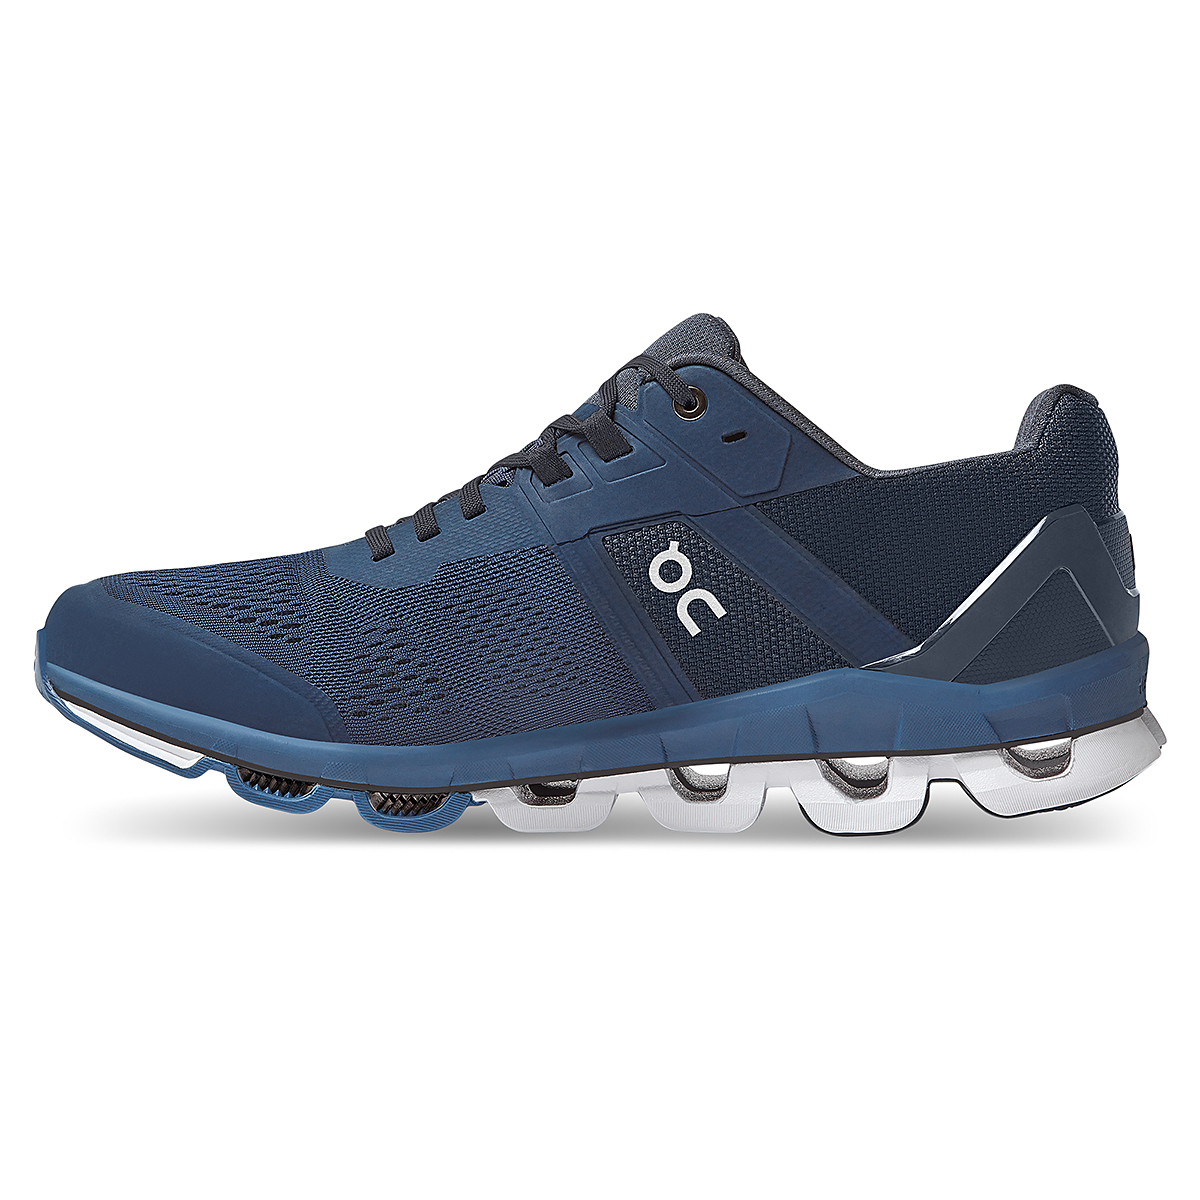 Men's On Cloudace Running Shoe - Color: Midnight   Navy - Size: 8 - Width: Regular, Midnight   Navy, large, image 2